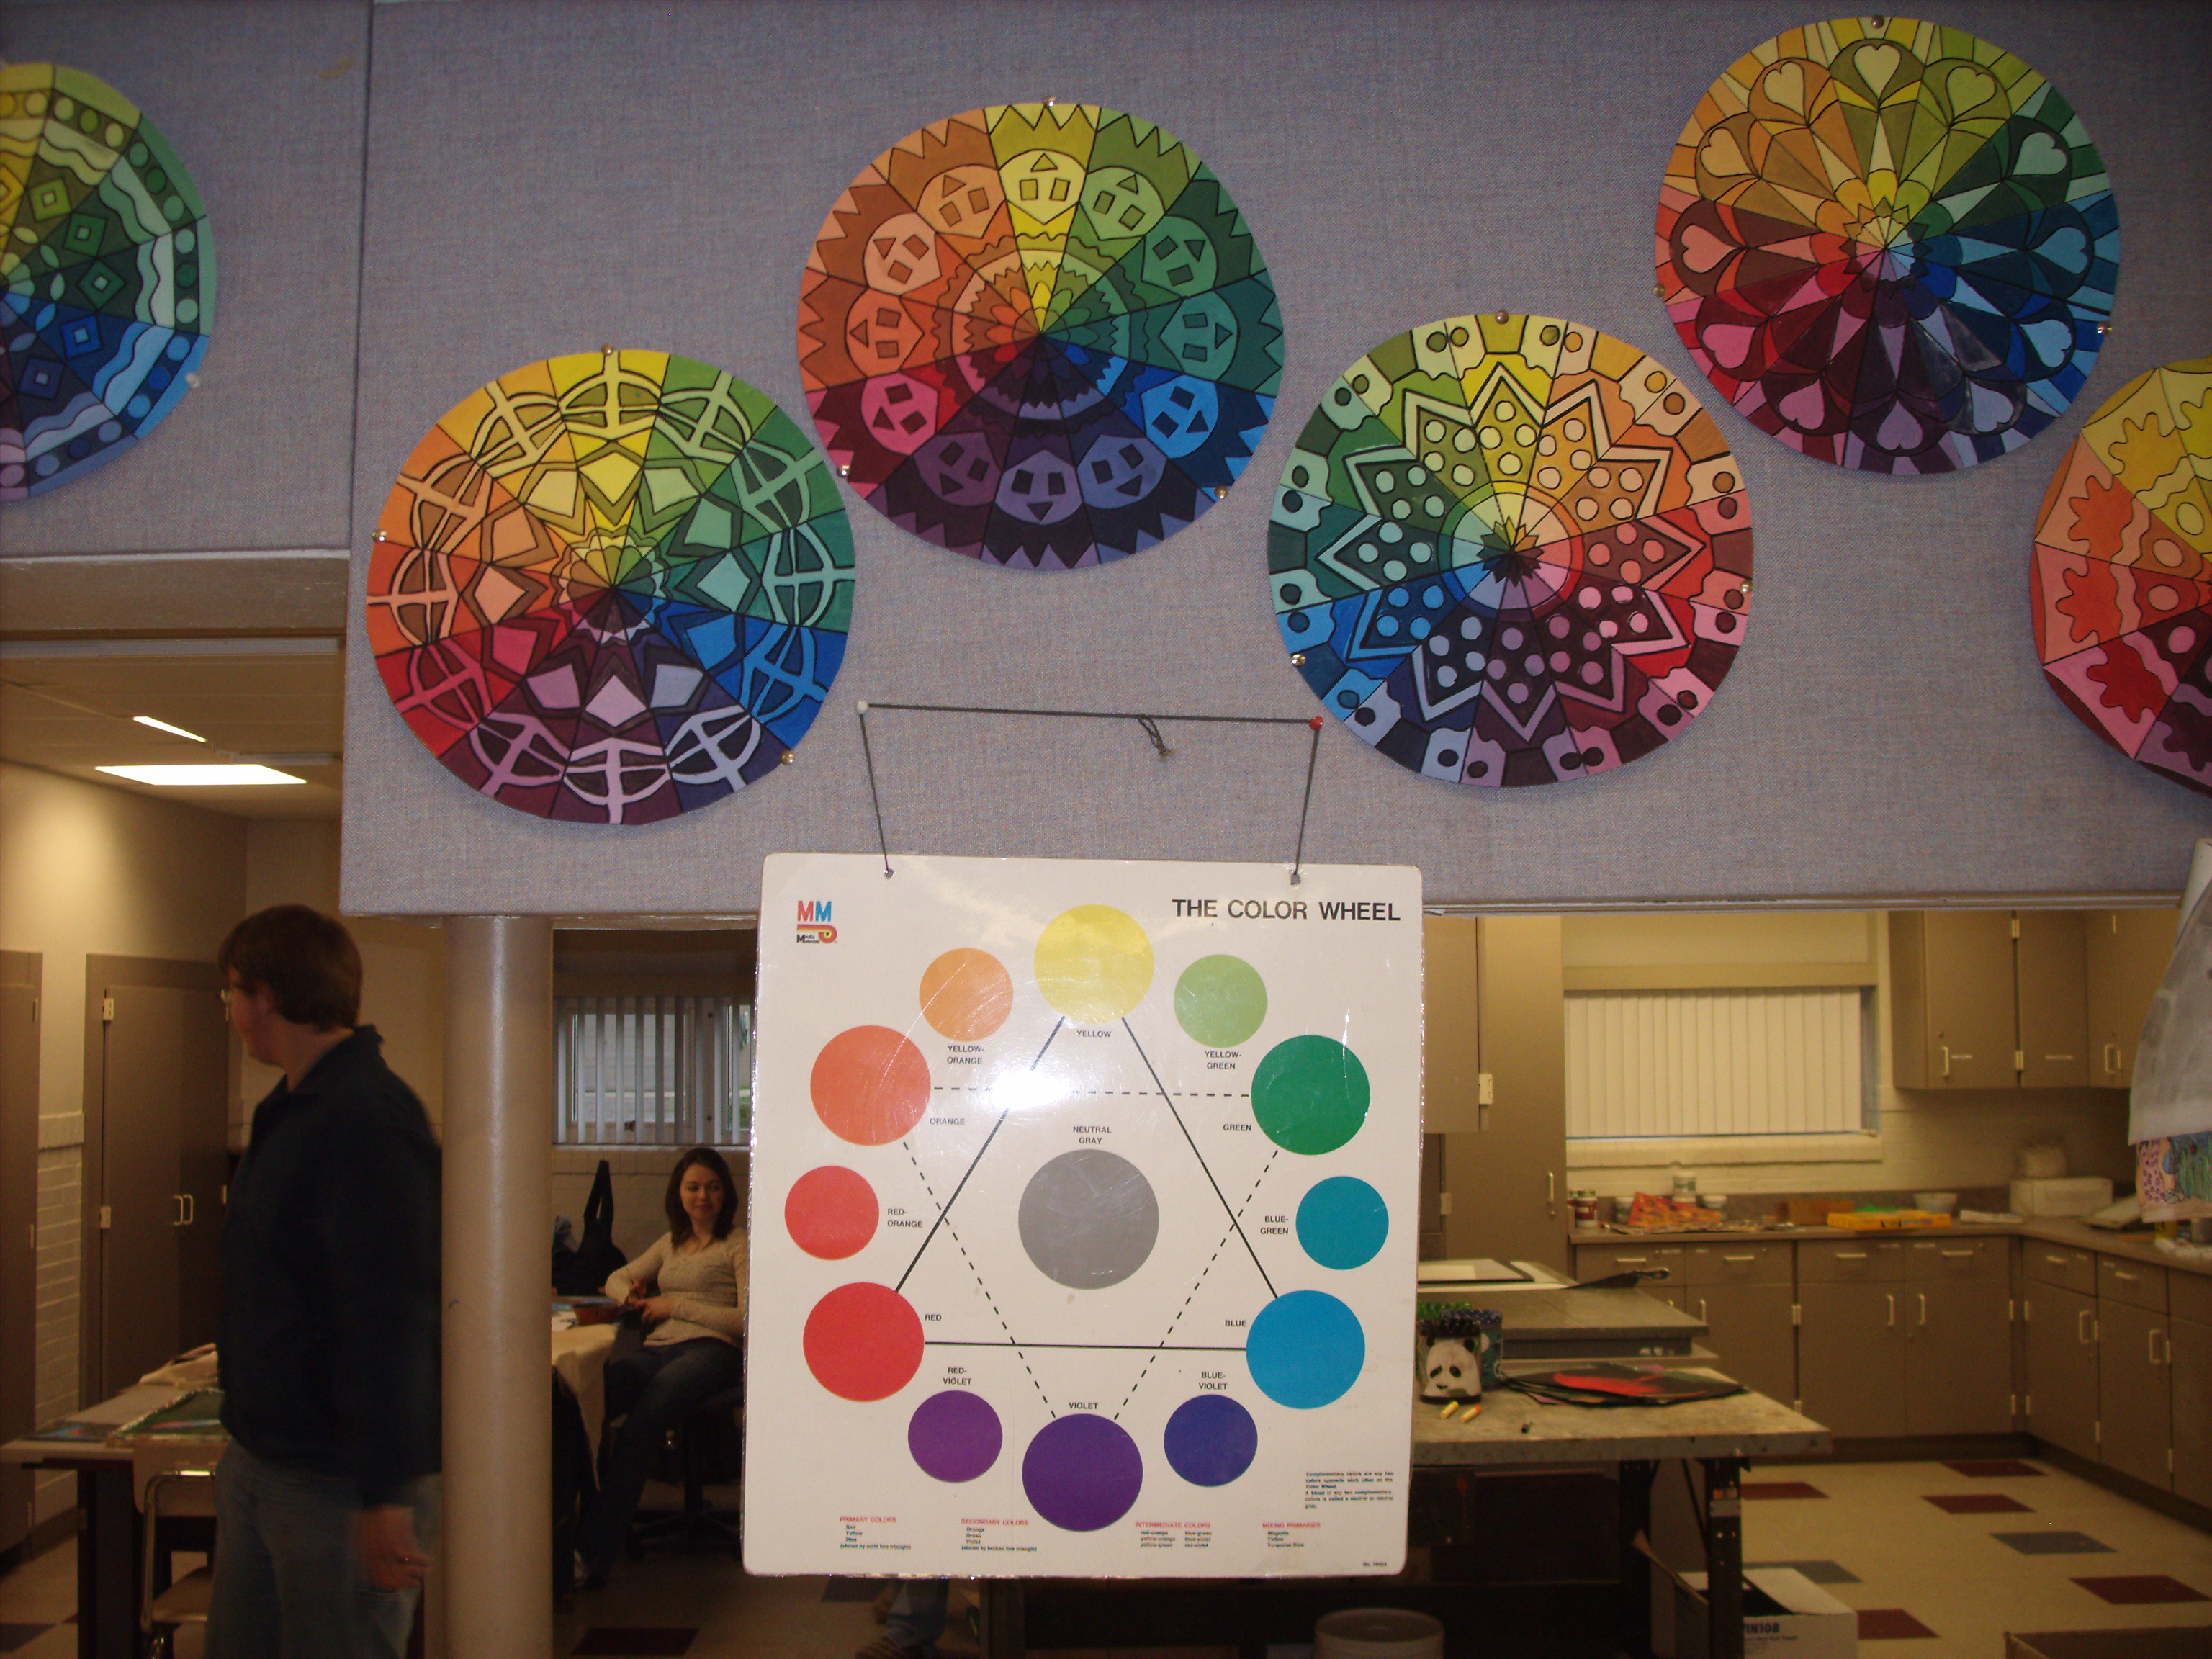 Art I High School Students Created An Project That Was Based On The Color Wheel And Radial Designs Really Enjoyed It